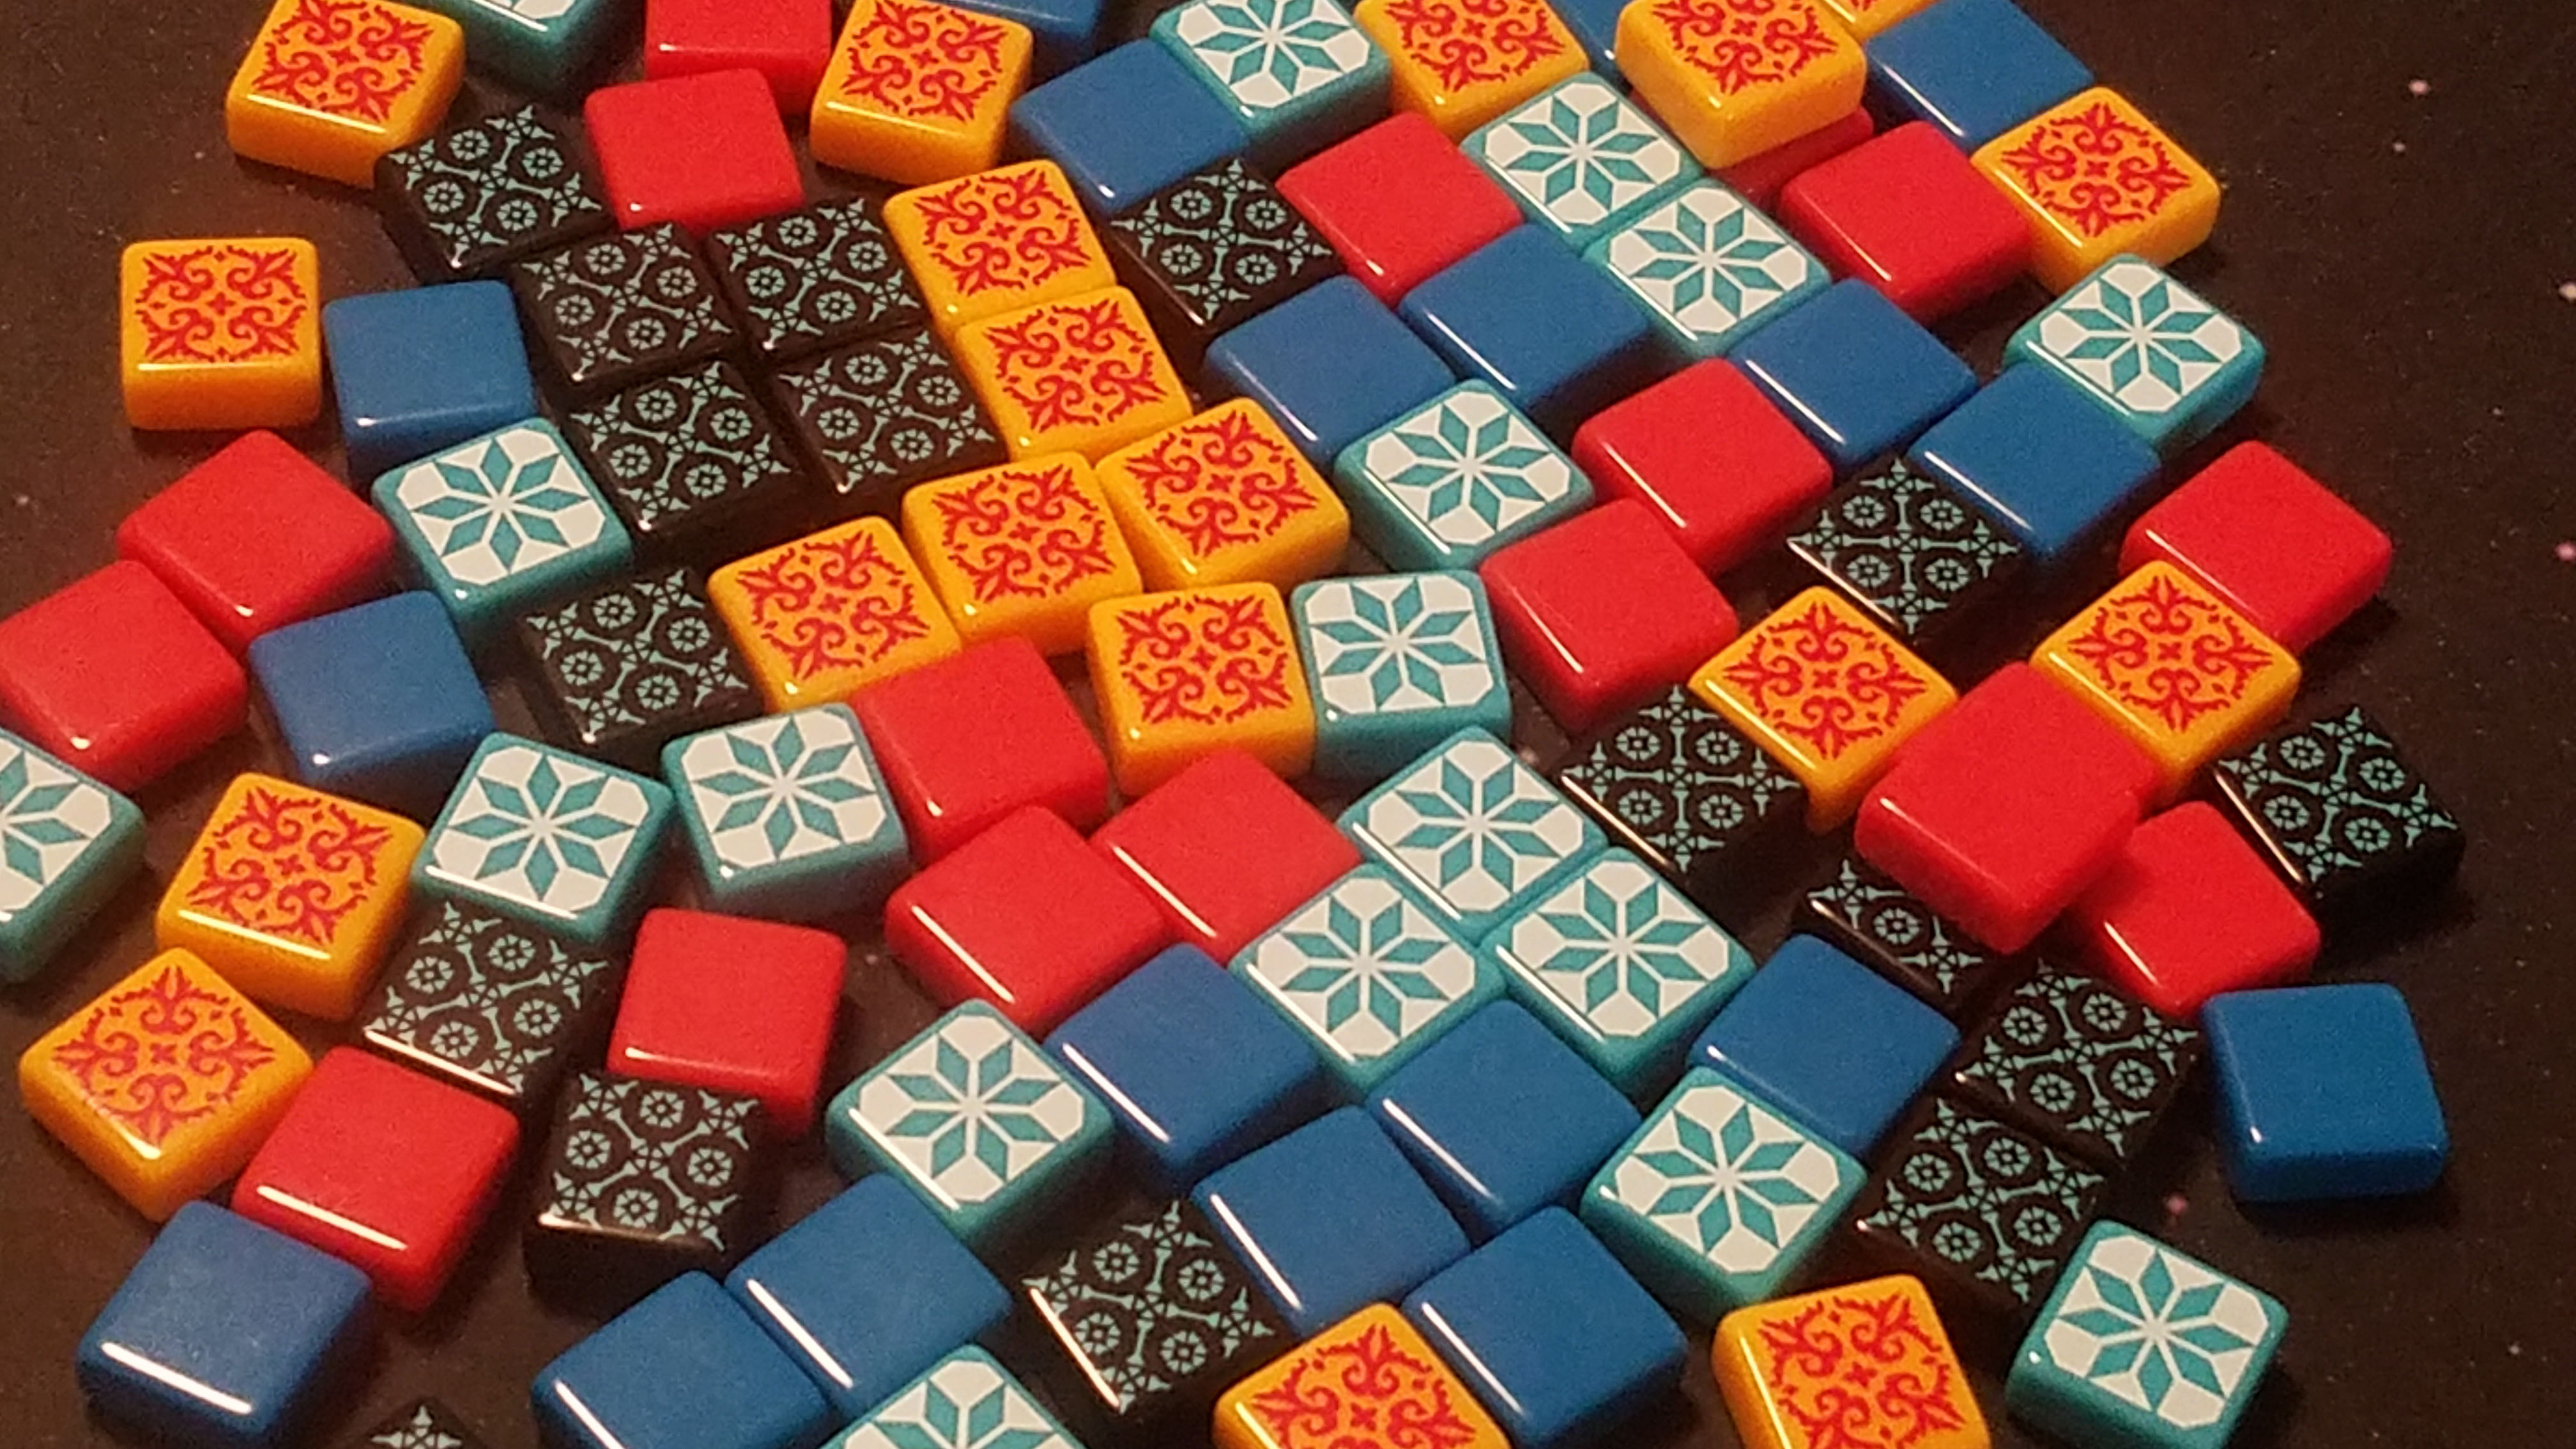 Azul: A puzzly mosaic of beautiful tiles -